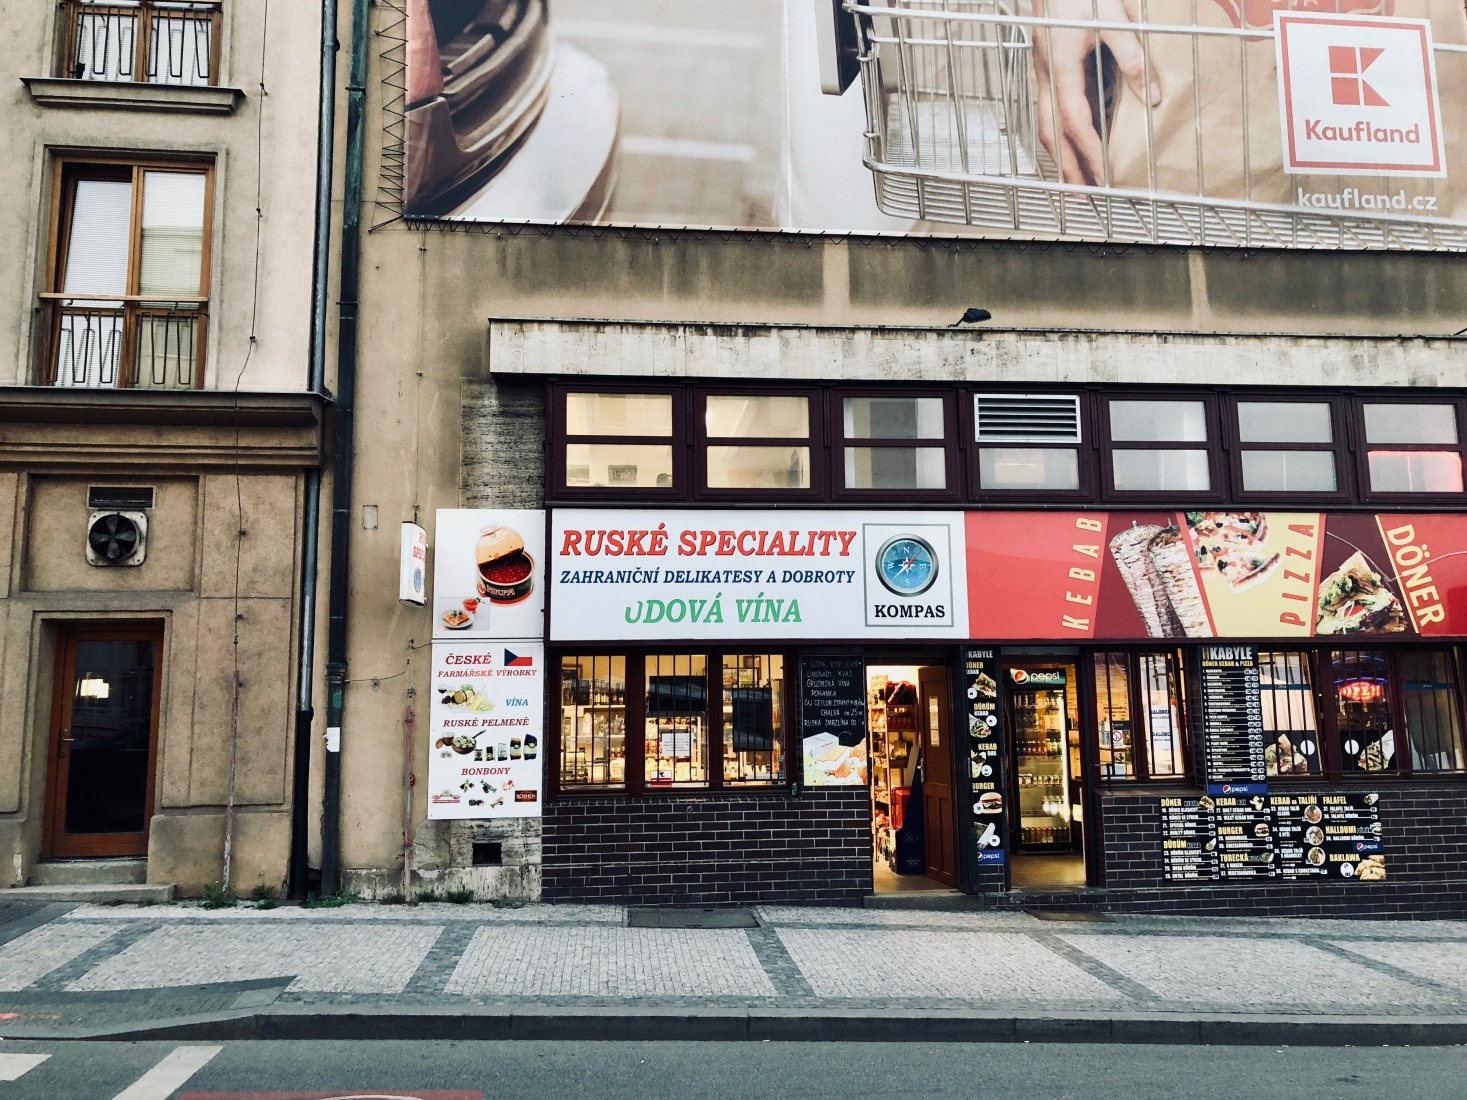 Russian convenience store in Prague, Bubeneč, that specializes in Russian food, a favorite of locals.